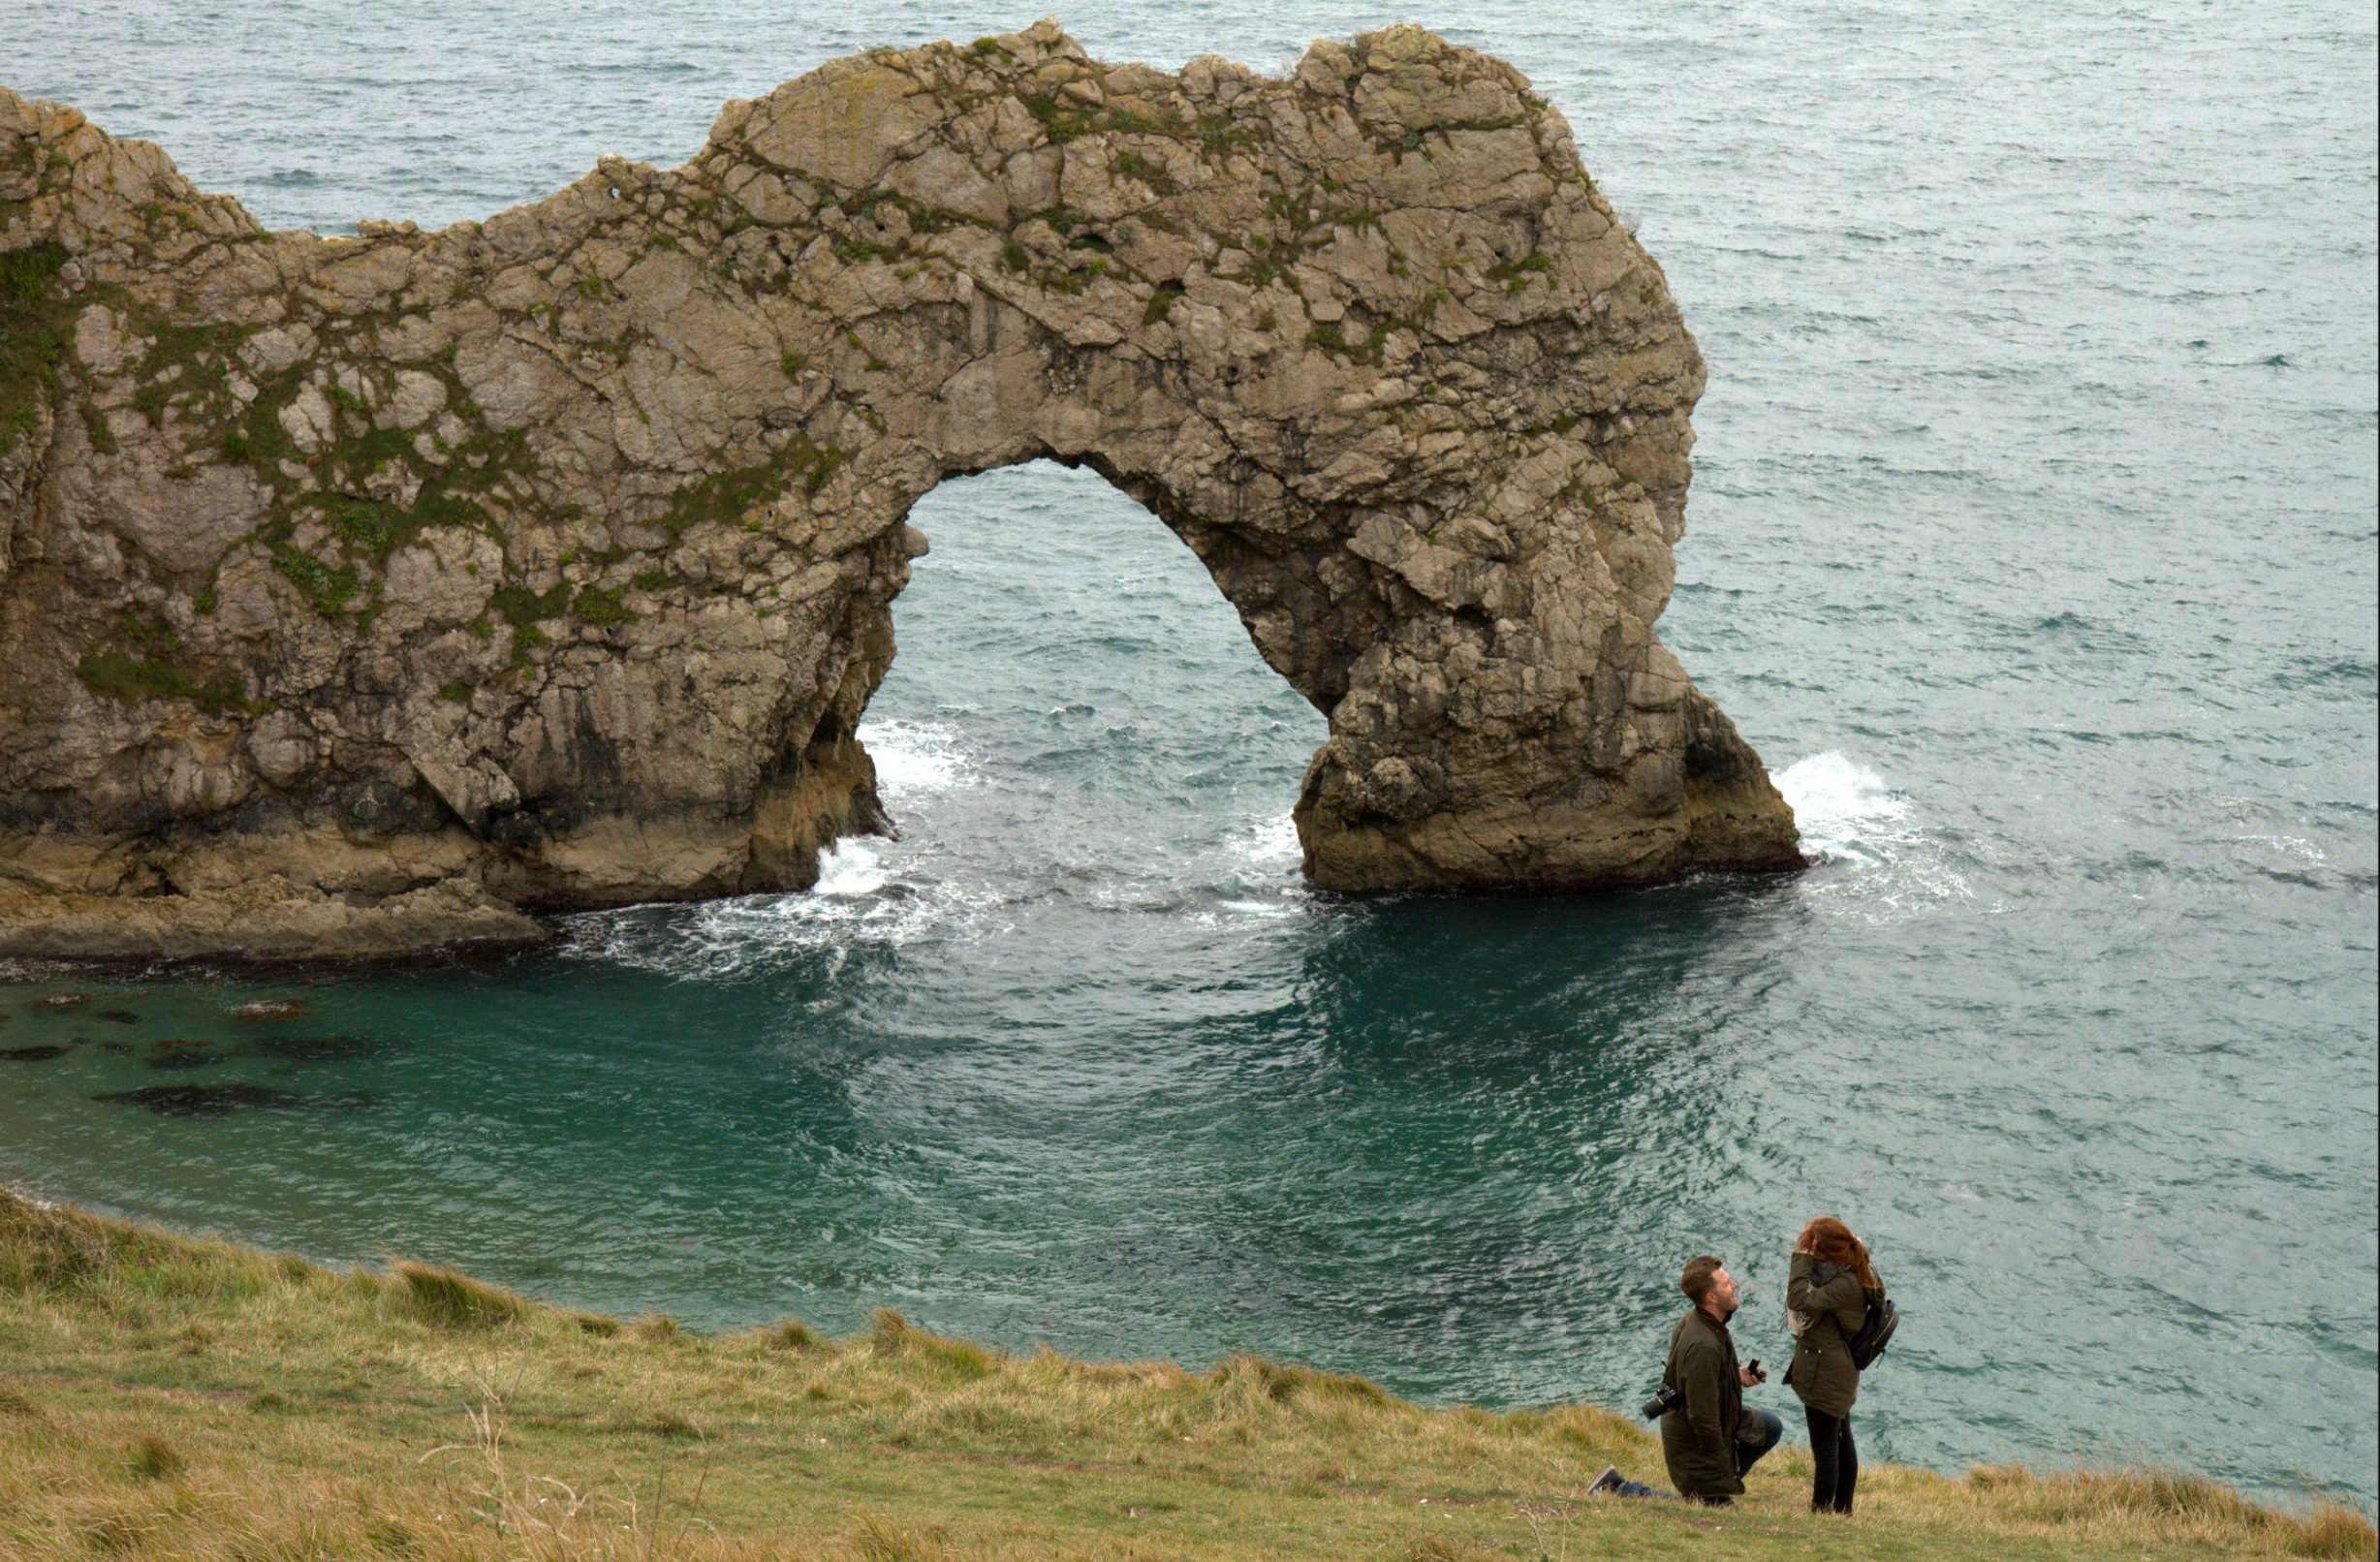 Woman who took perfect proposal photo launches search for mystery couple